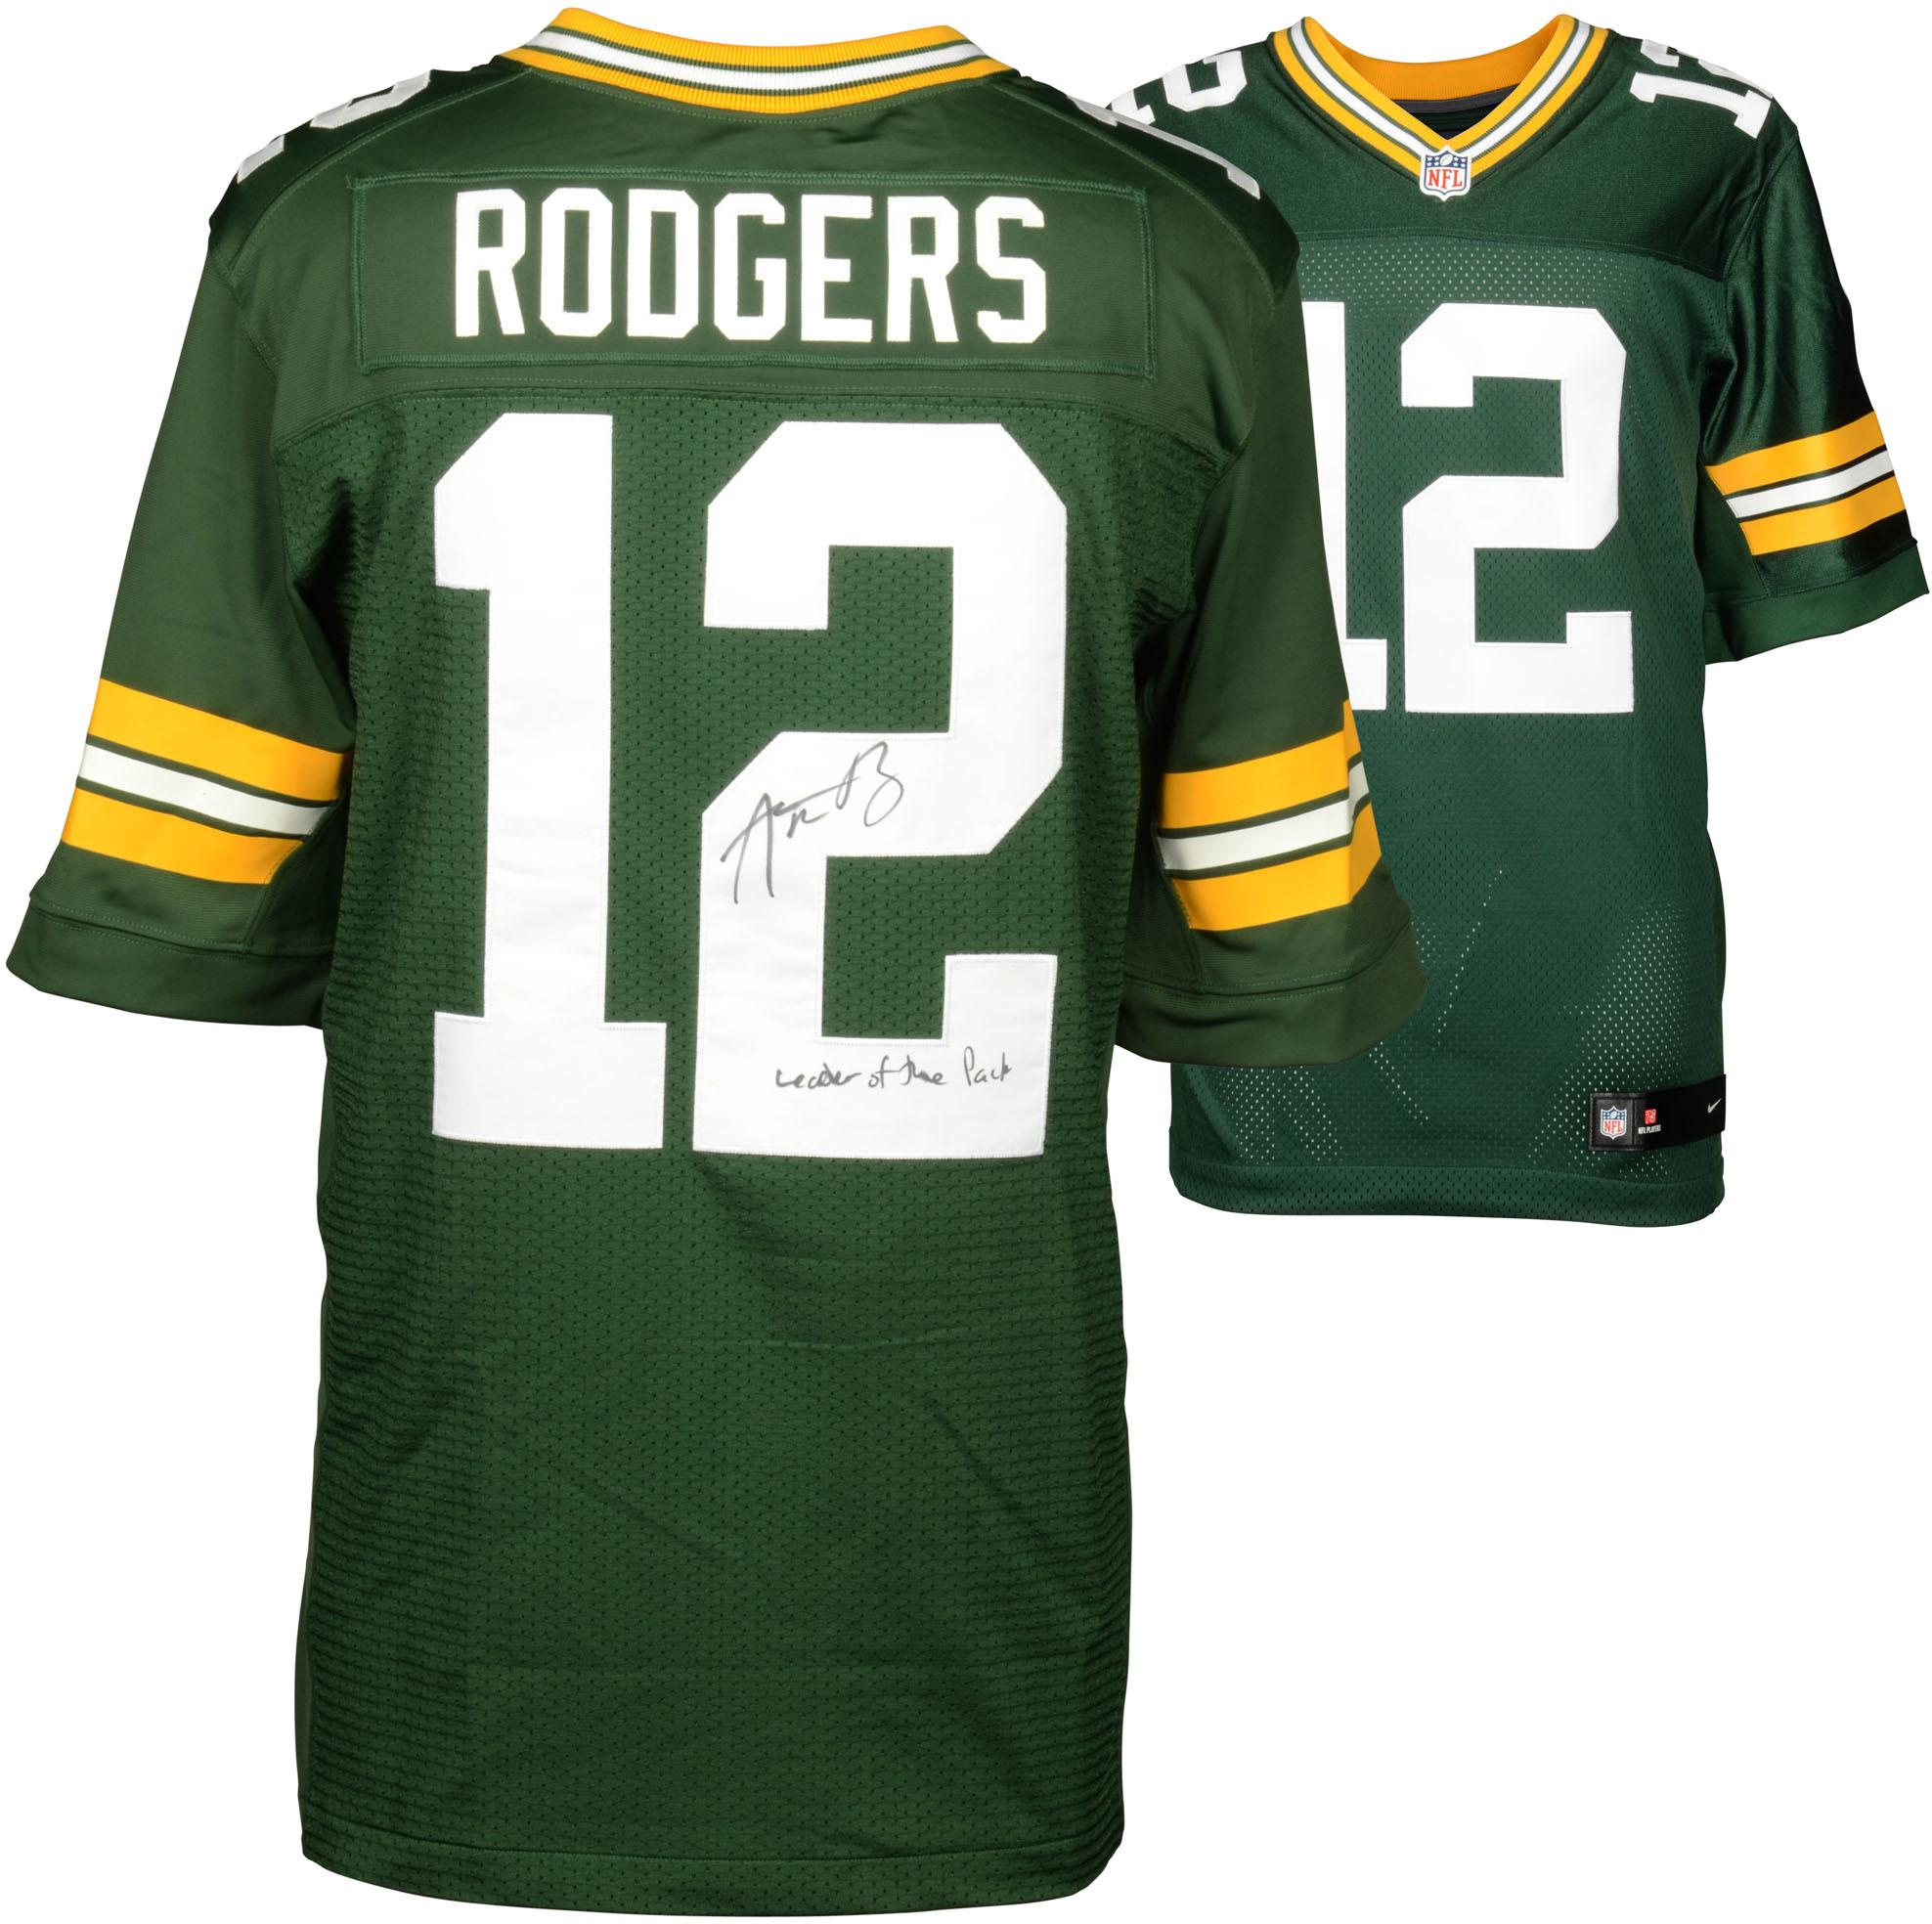 "Aaron Rodgers Green Bay Packers Autographed Green Elite Jersey with ""Leader of the Pack"" Inscription - Fanatics Authentic Certified"